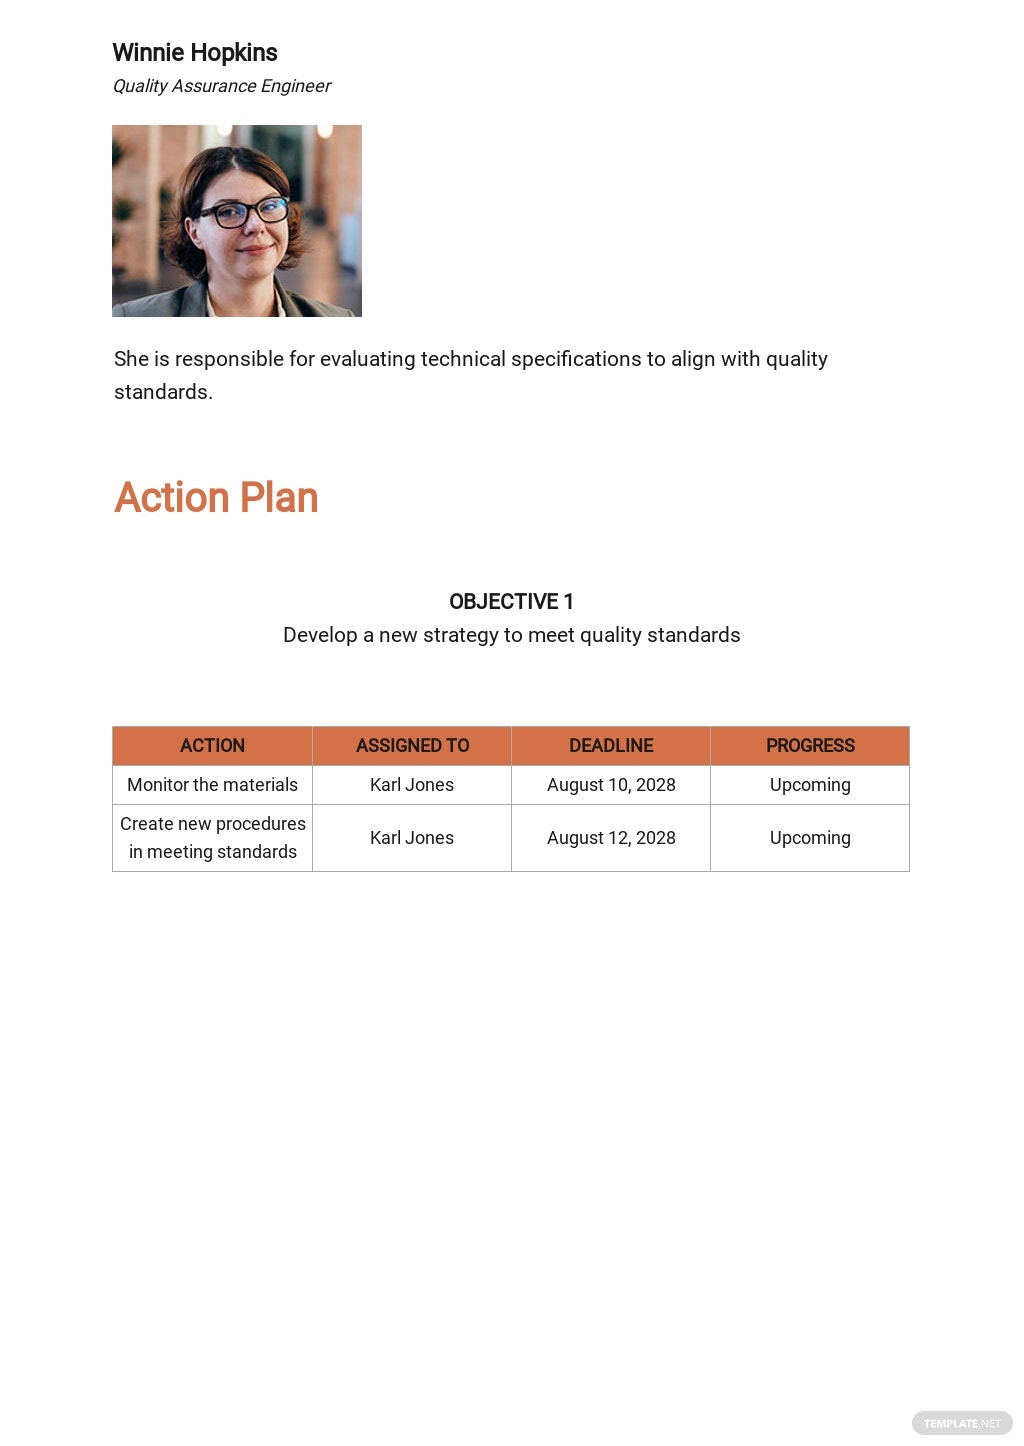 Quality Action Plan Template 2.jpe